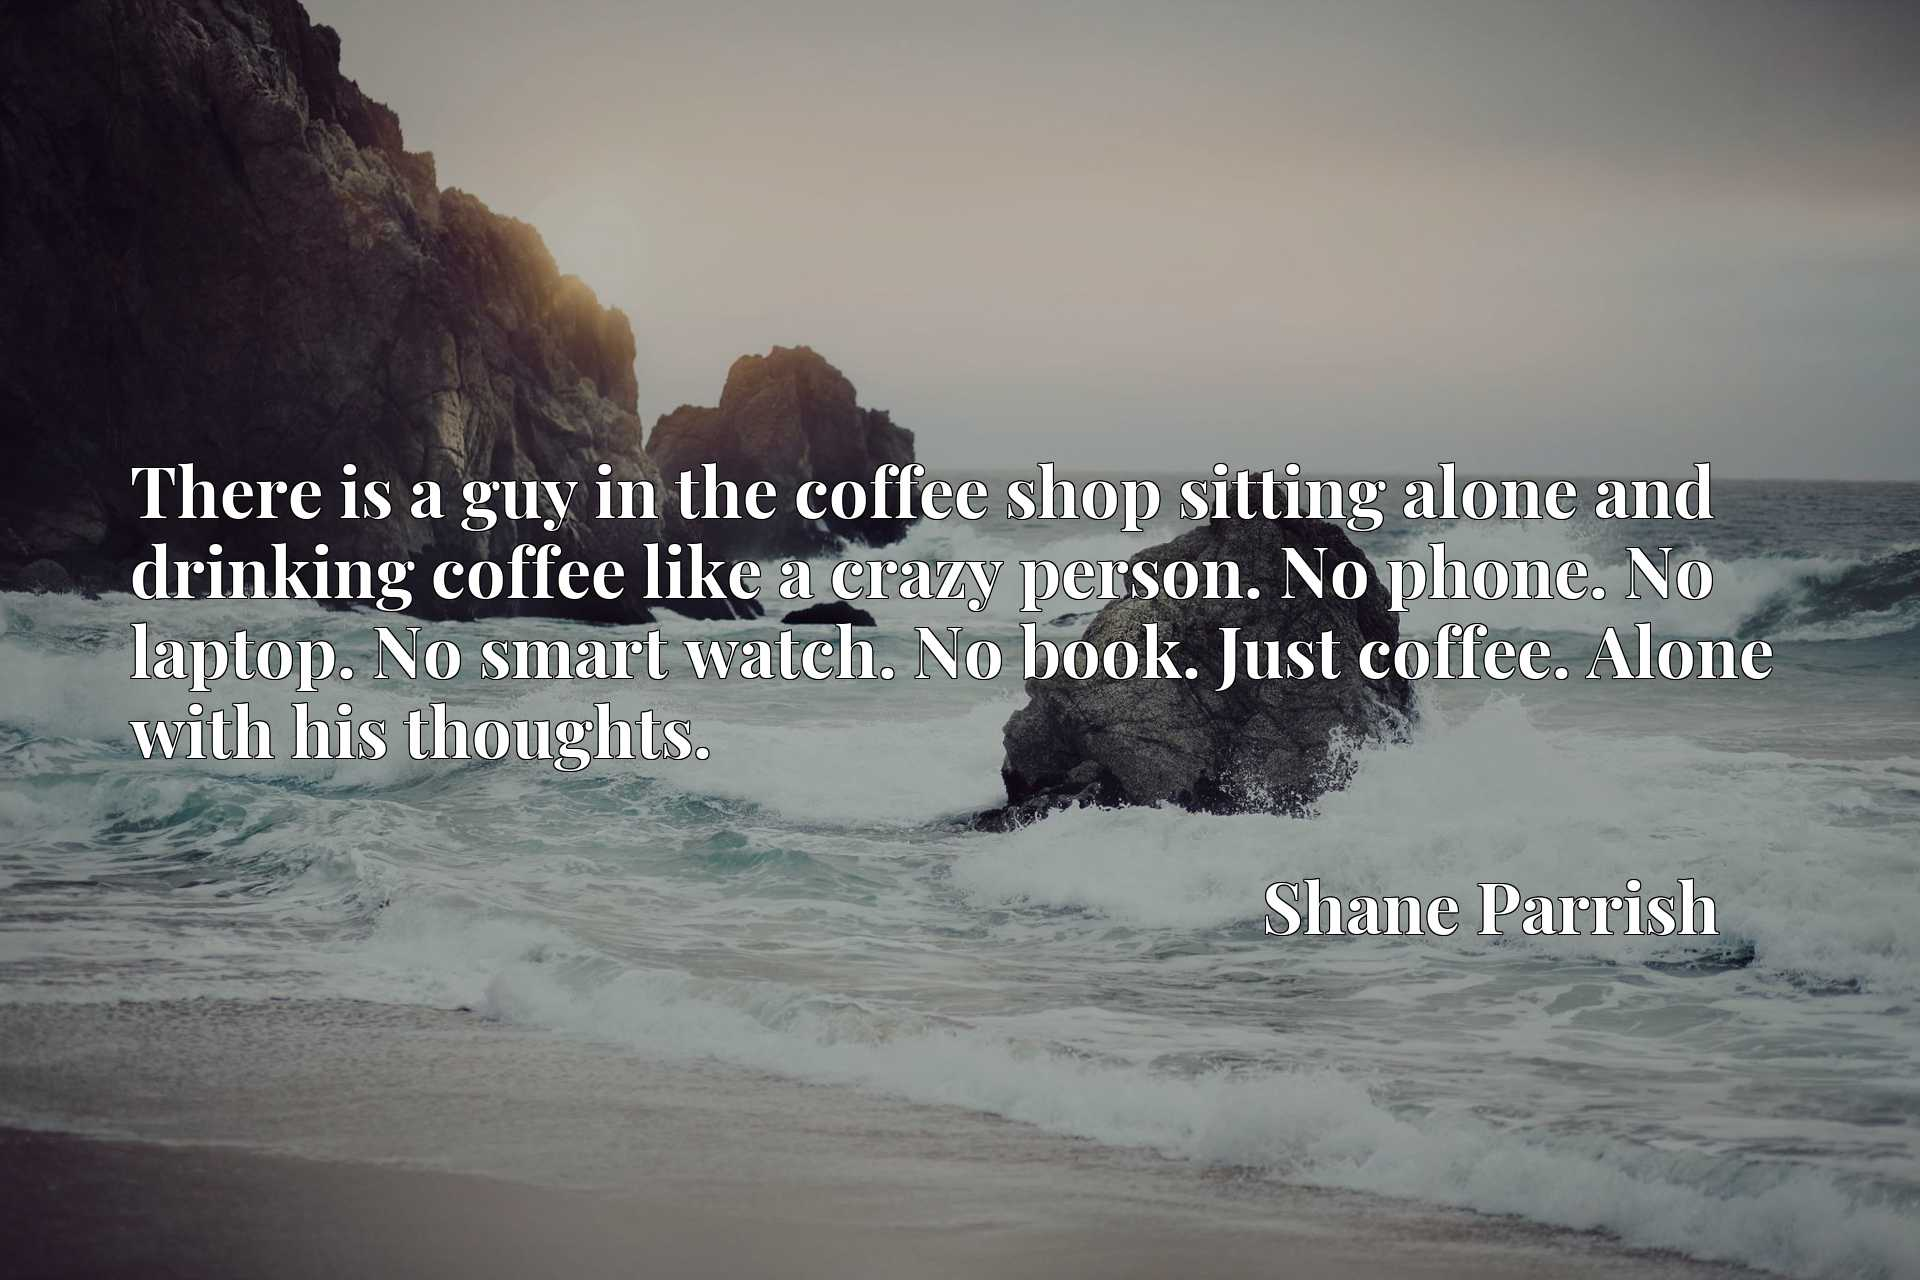 There is a guy in the coffee shop sitting alone and drinking coffee like a crazy person. No phone. No laptop. No smart watch. No book. Just coffee. Alone with his thoughts.